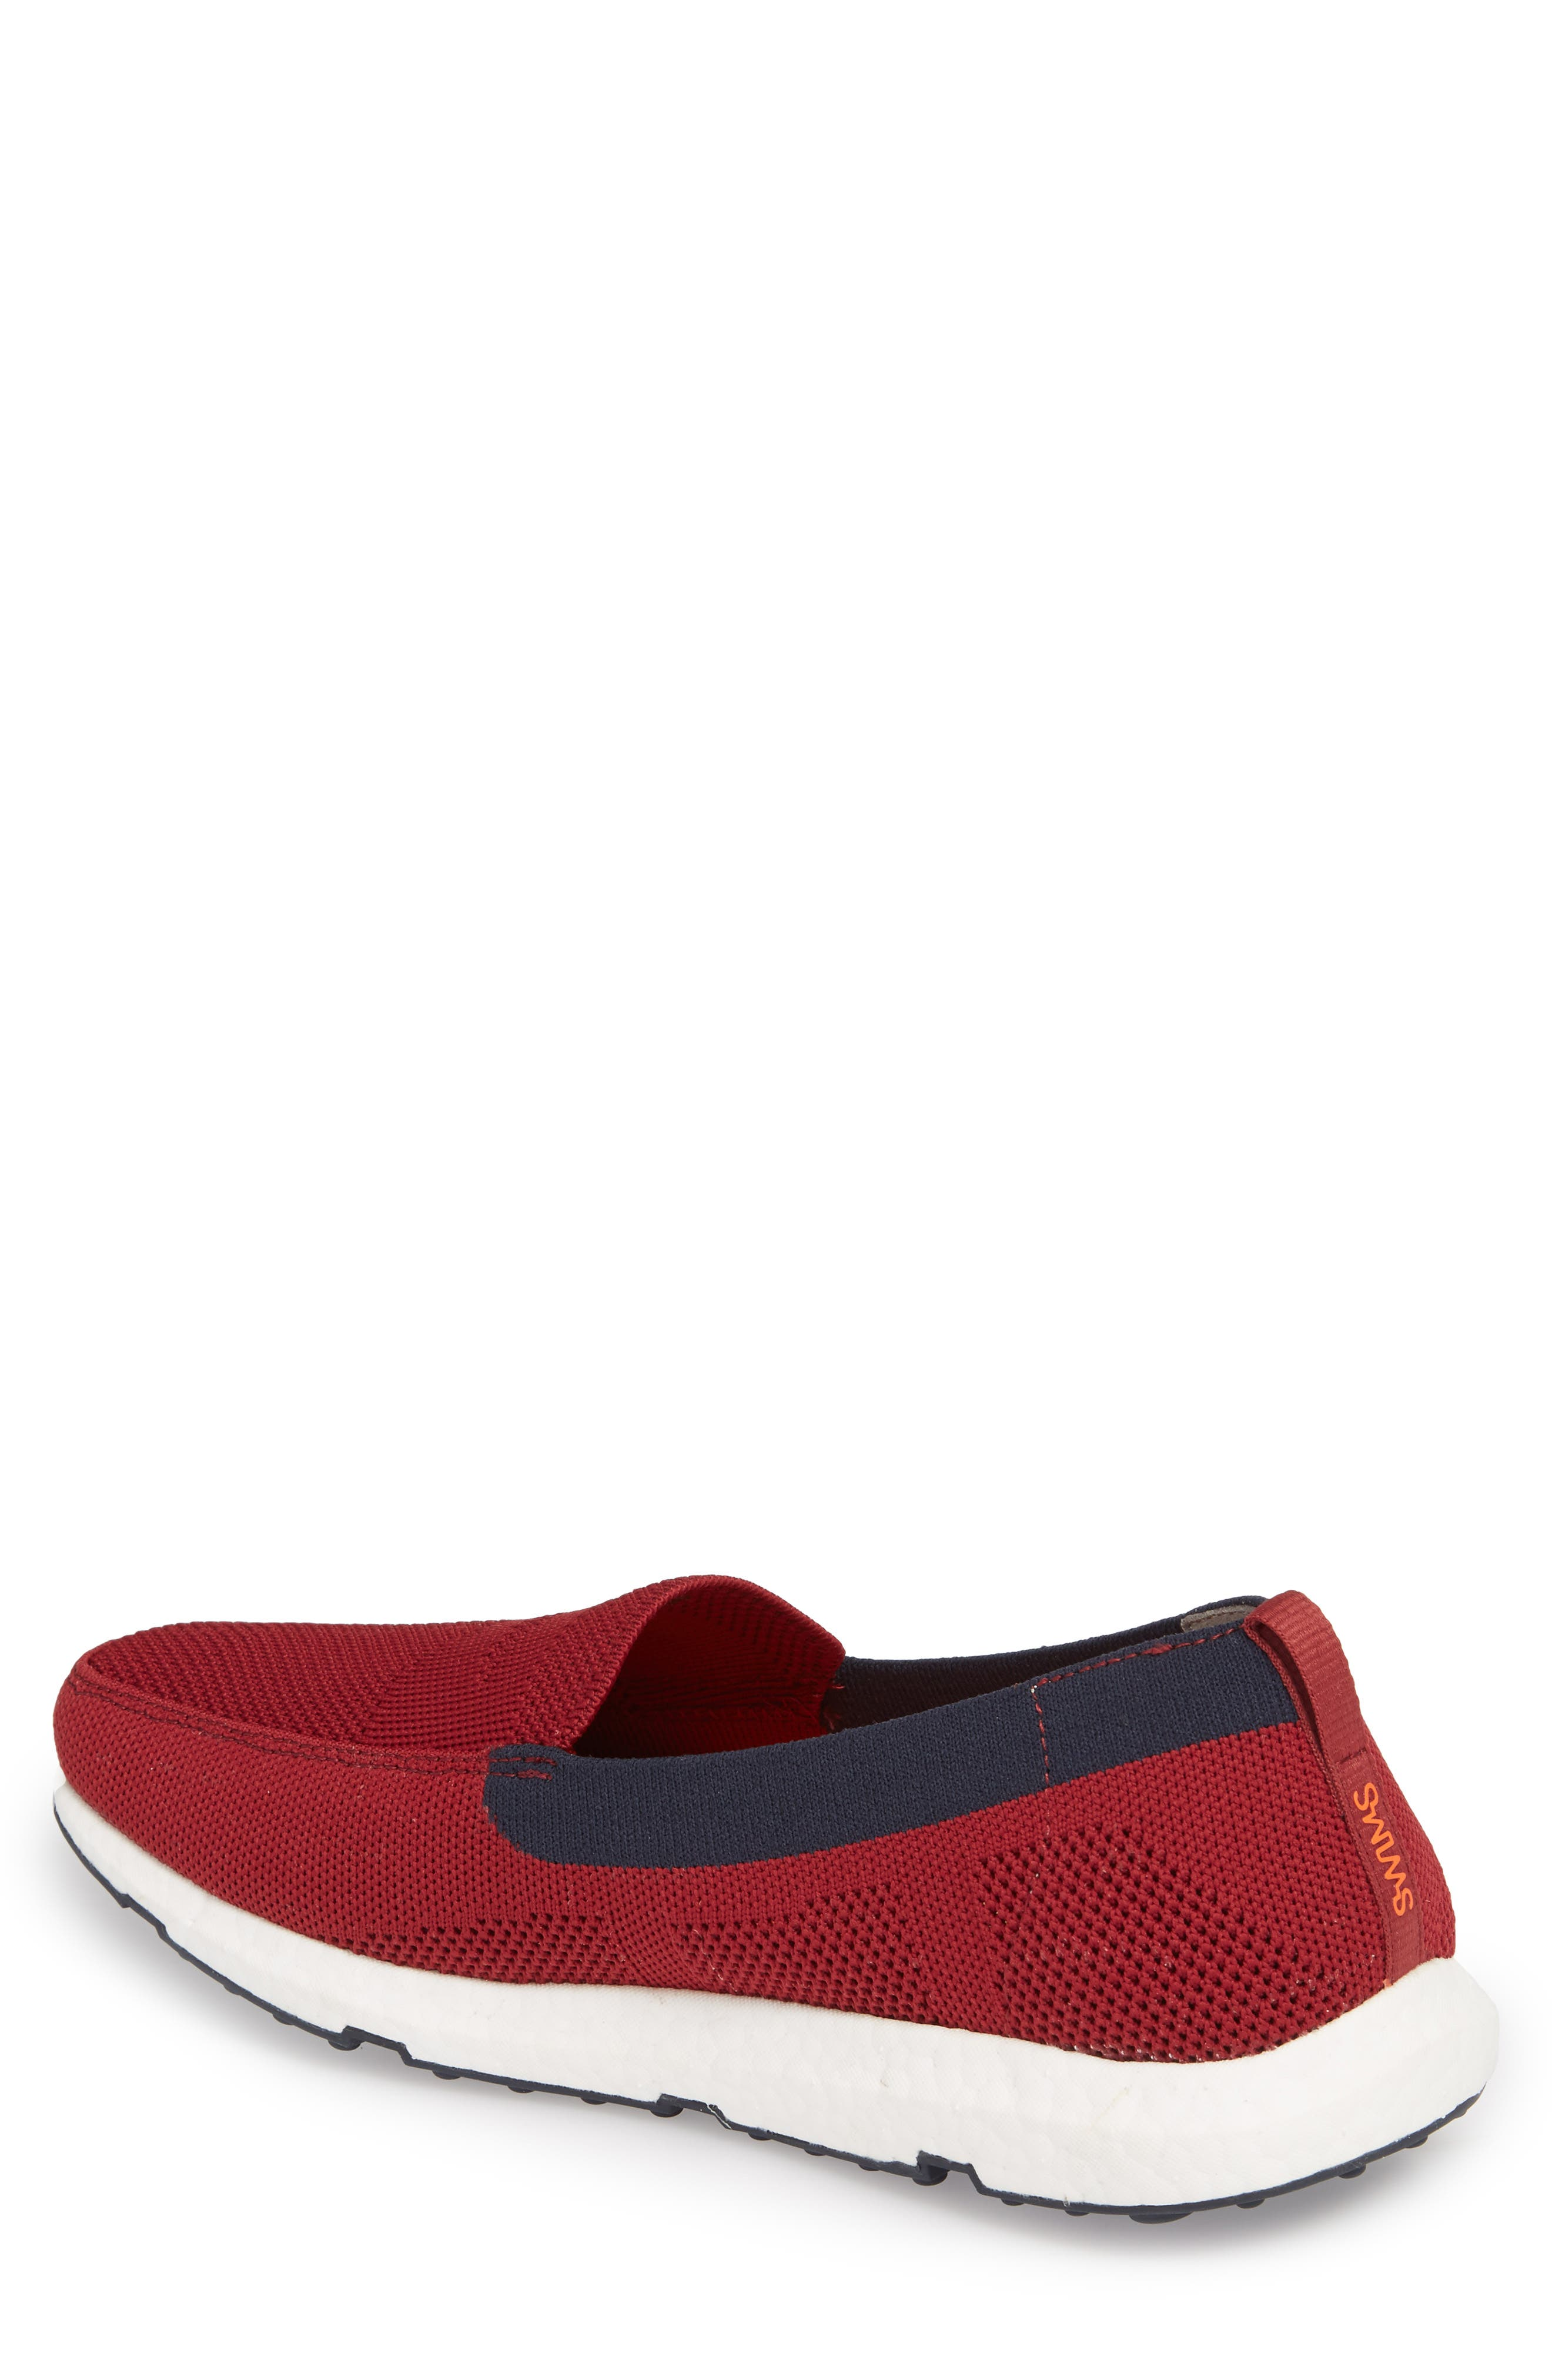 Breeze Leap Penny Loafer,                             Alternate thumbnail 2, color,                             Deep Red/ Navy